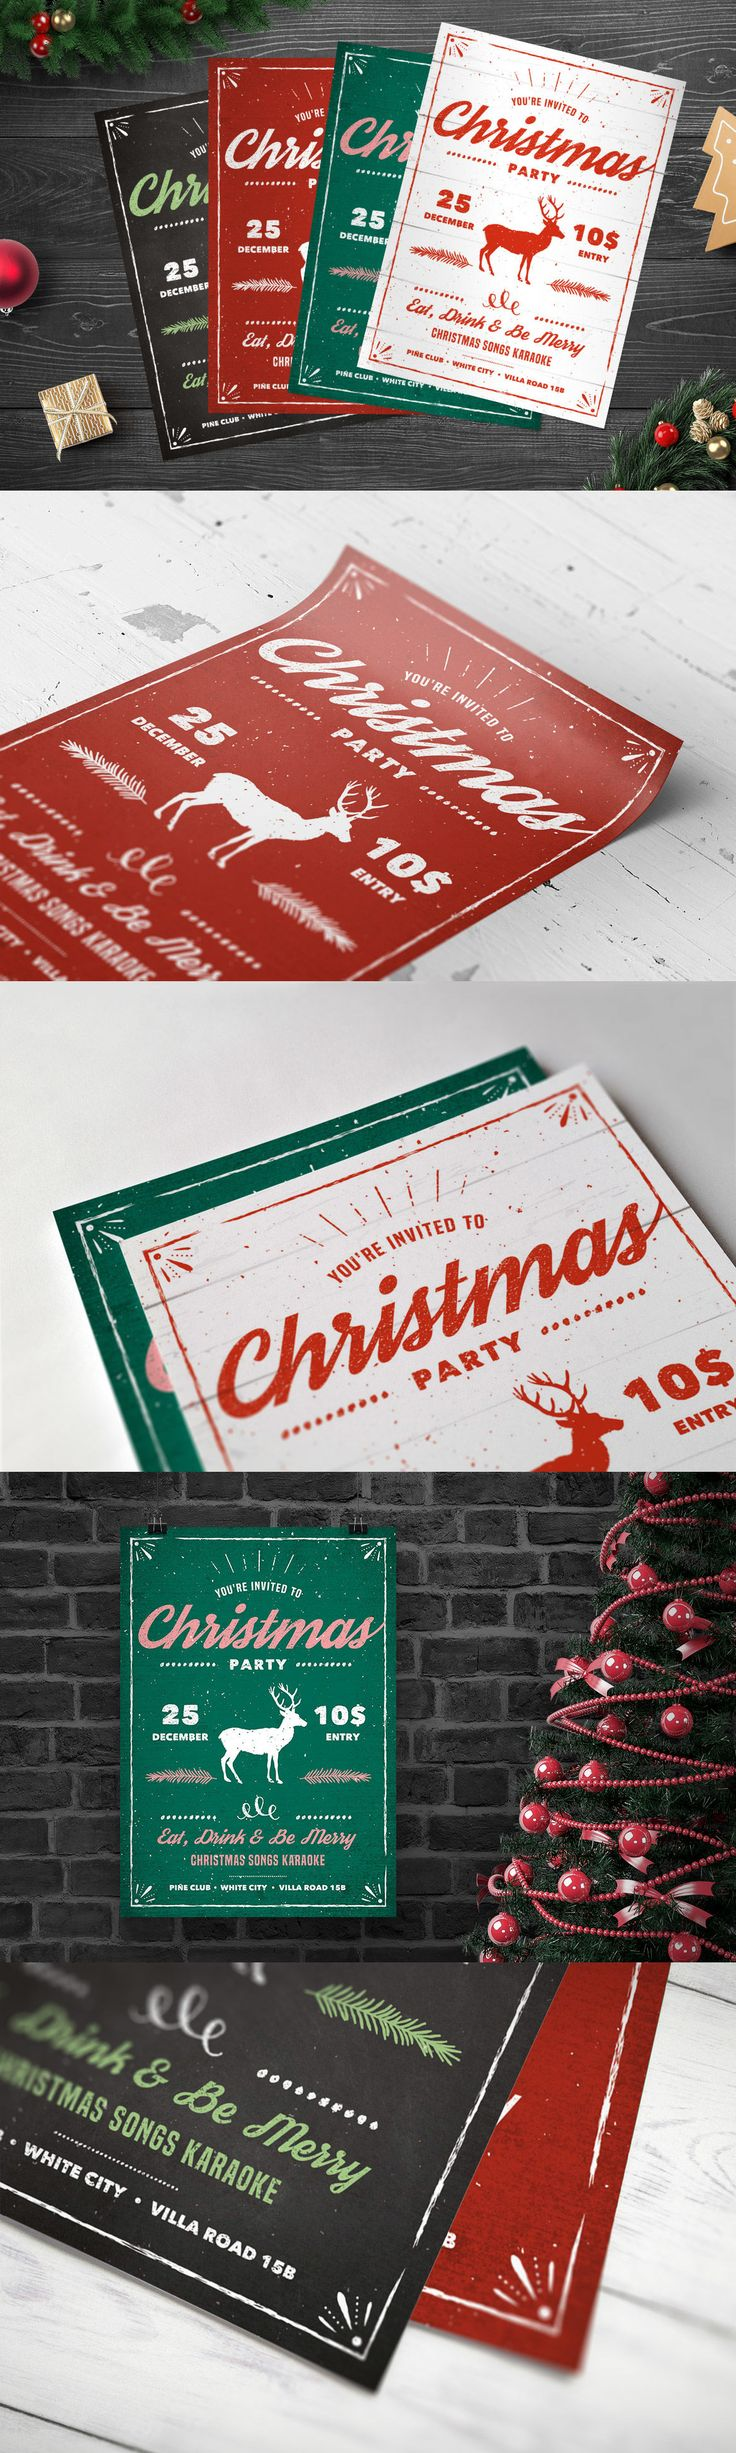 best images about christmas flyer templates vintage christmas party flyer template psd xmas design